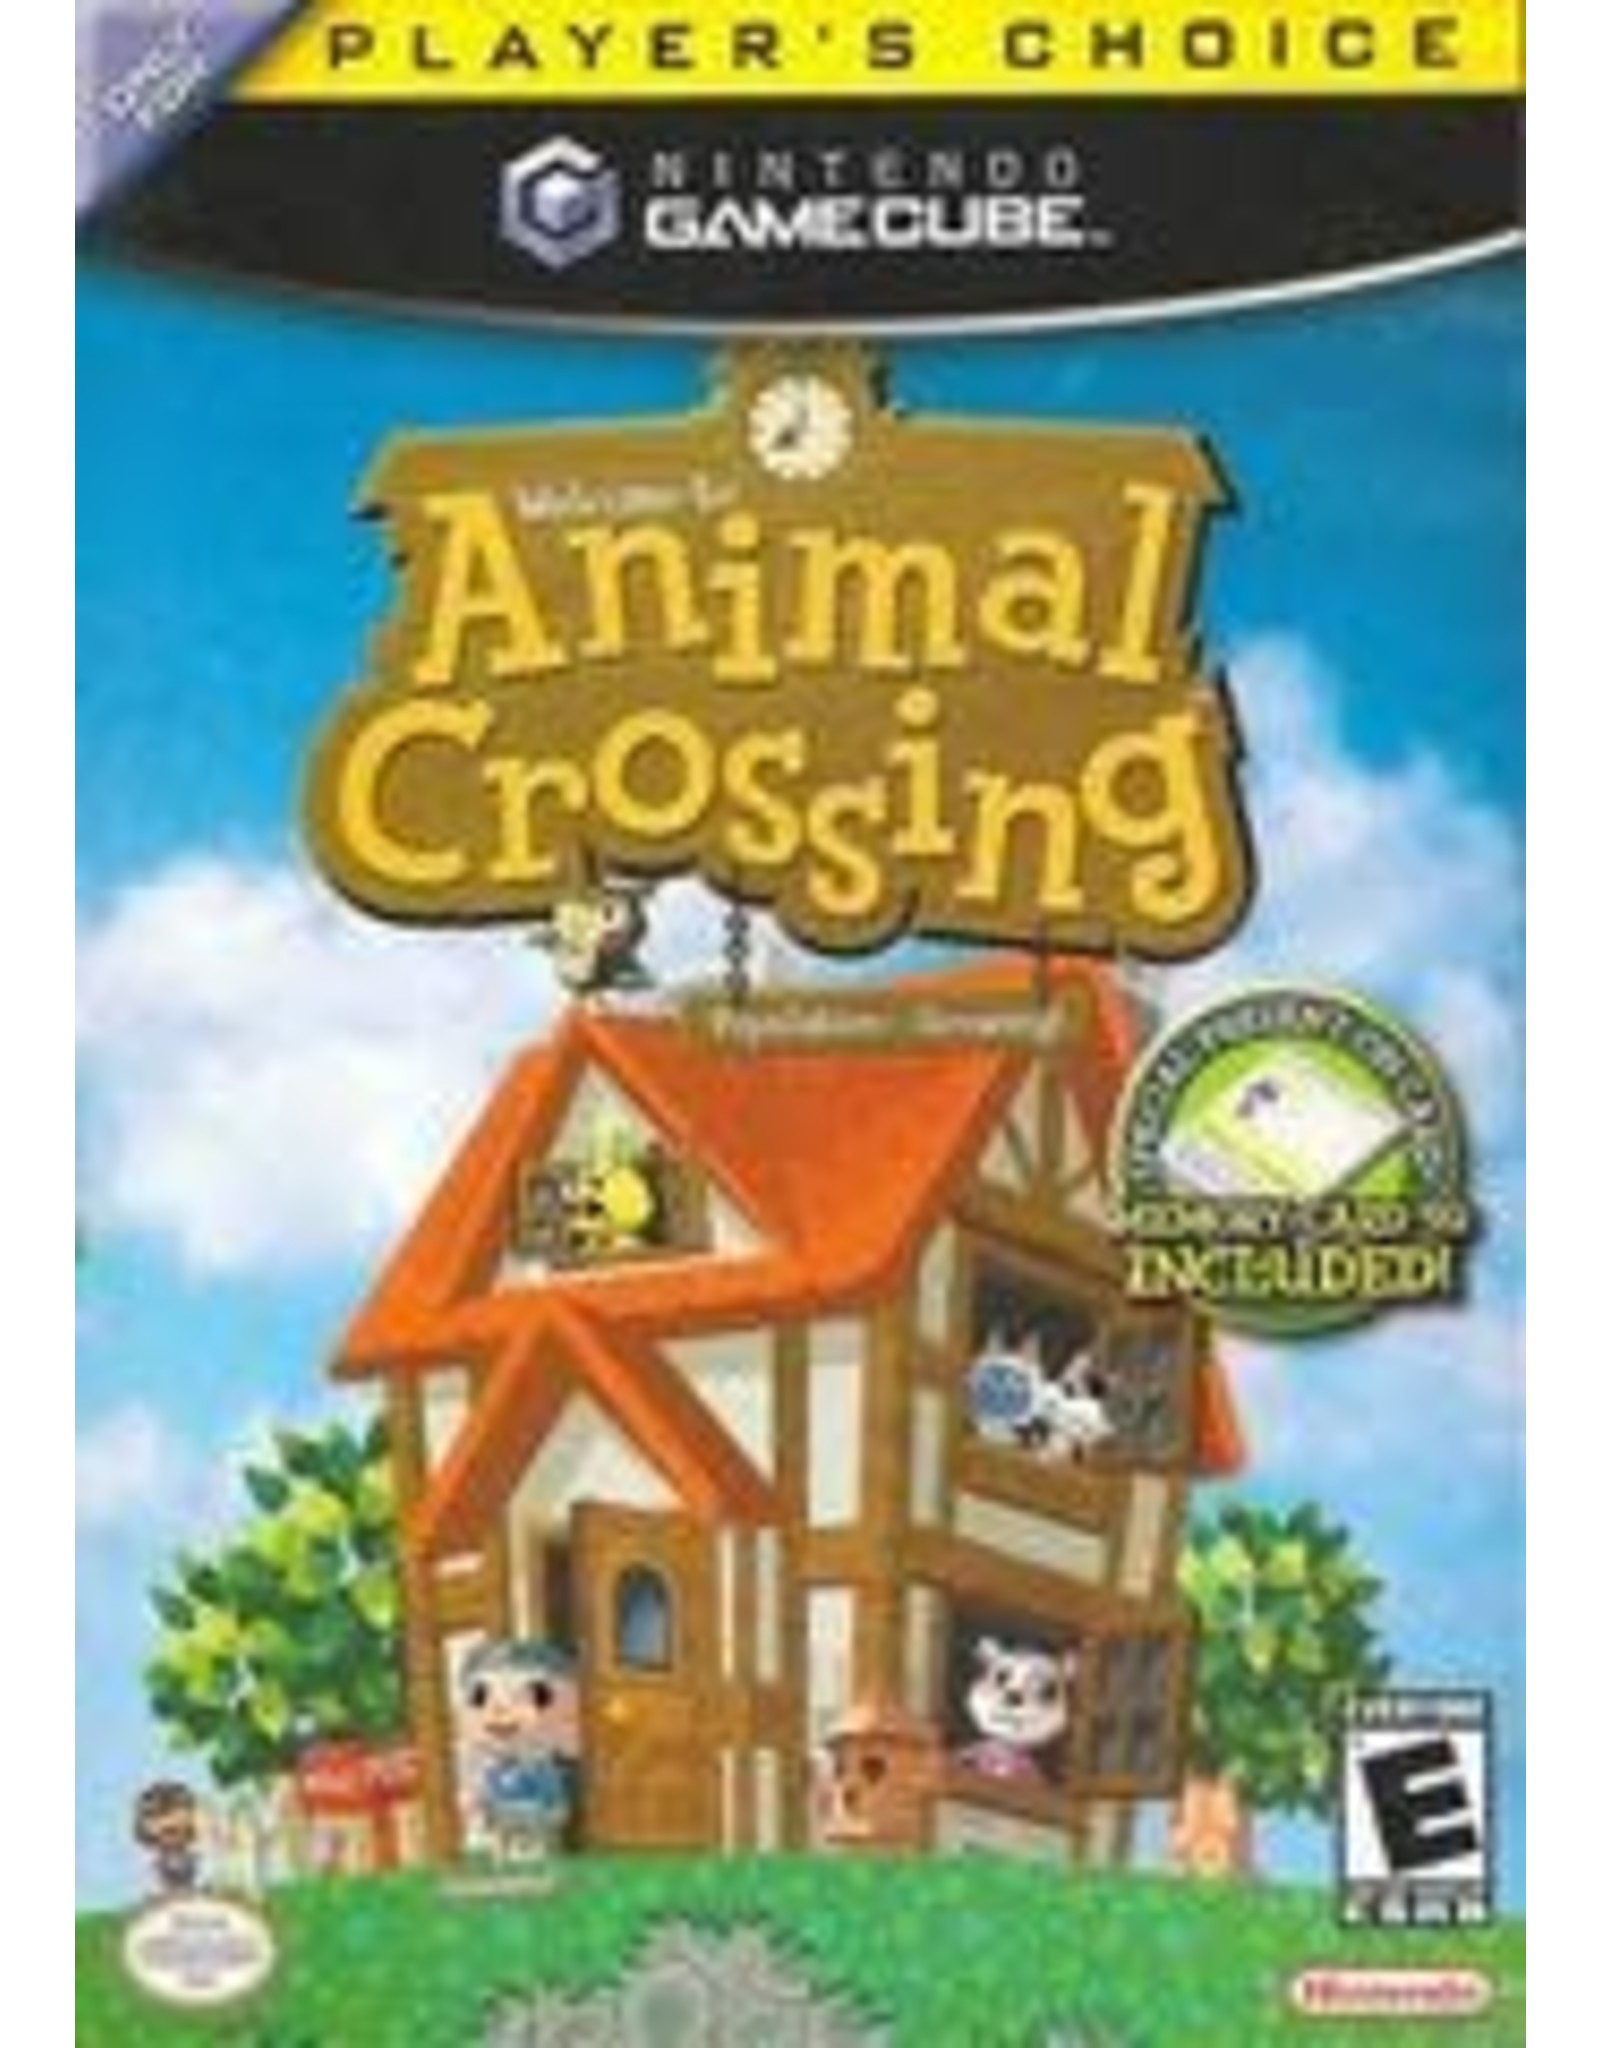 Gamecube Animal Crossing (Player's Choice, No Manual, with Memory Card)